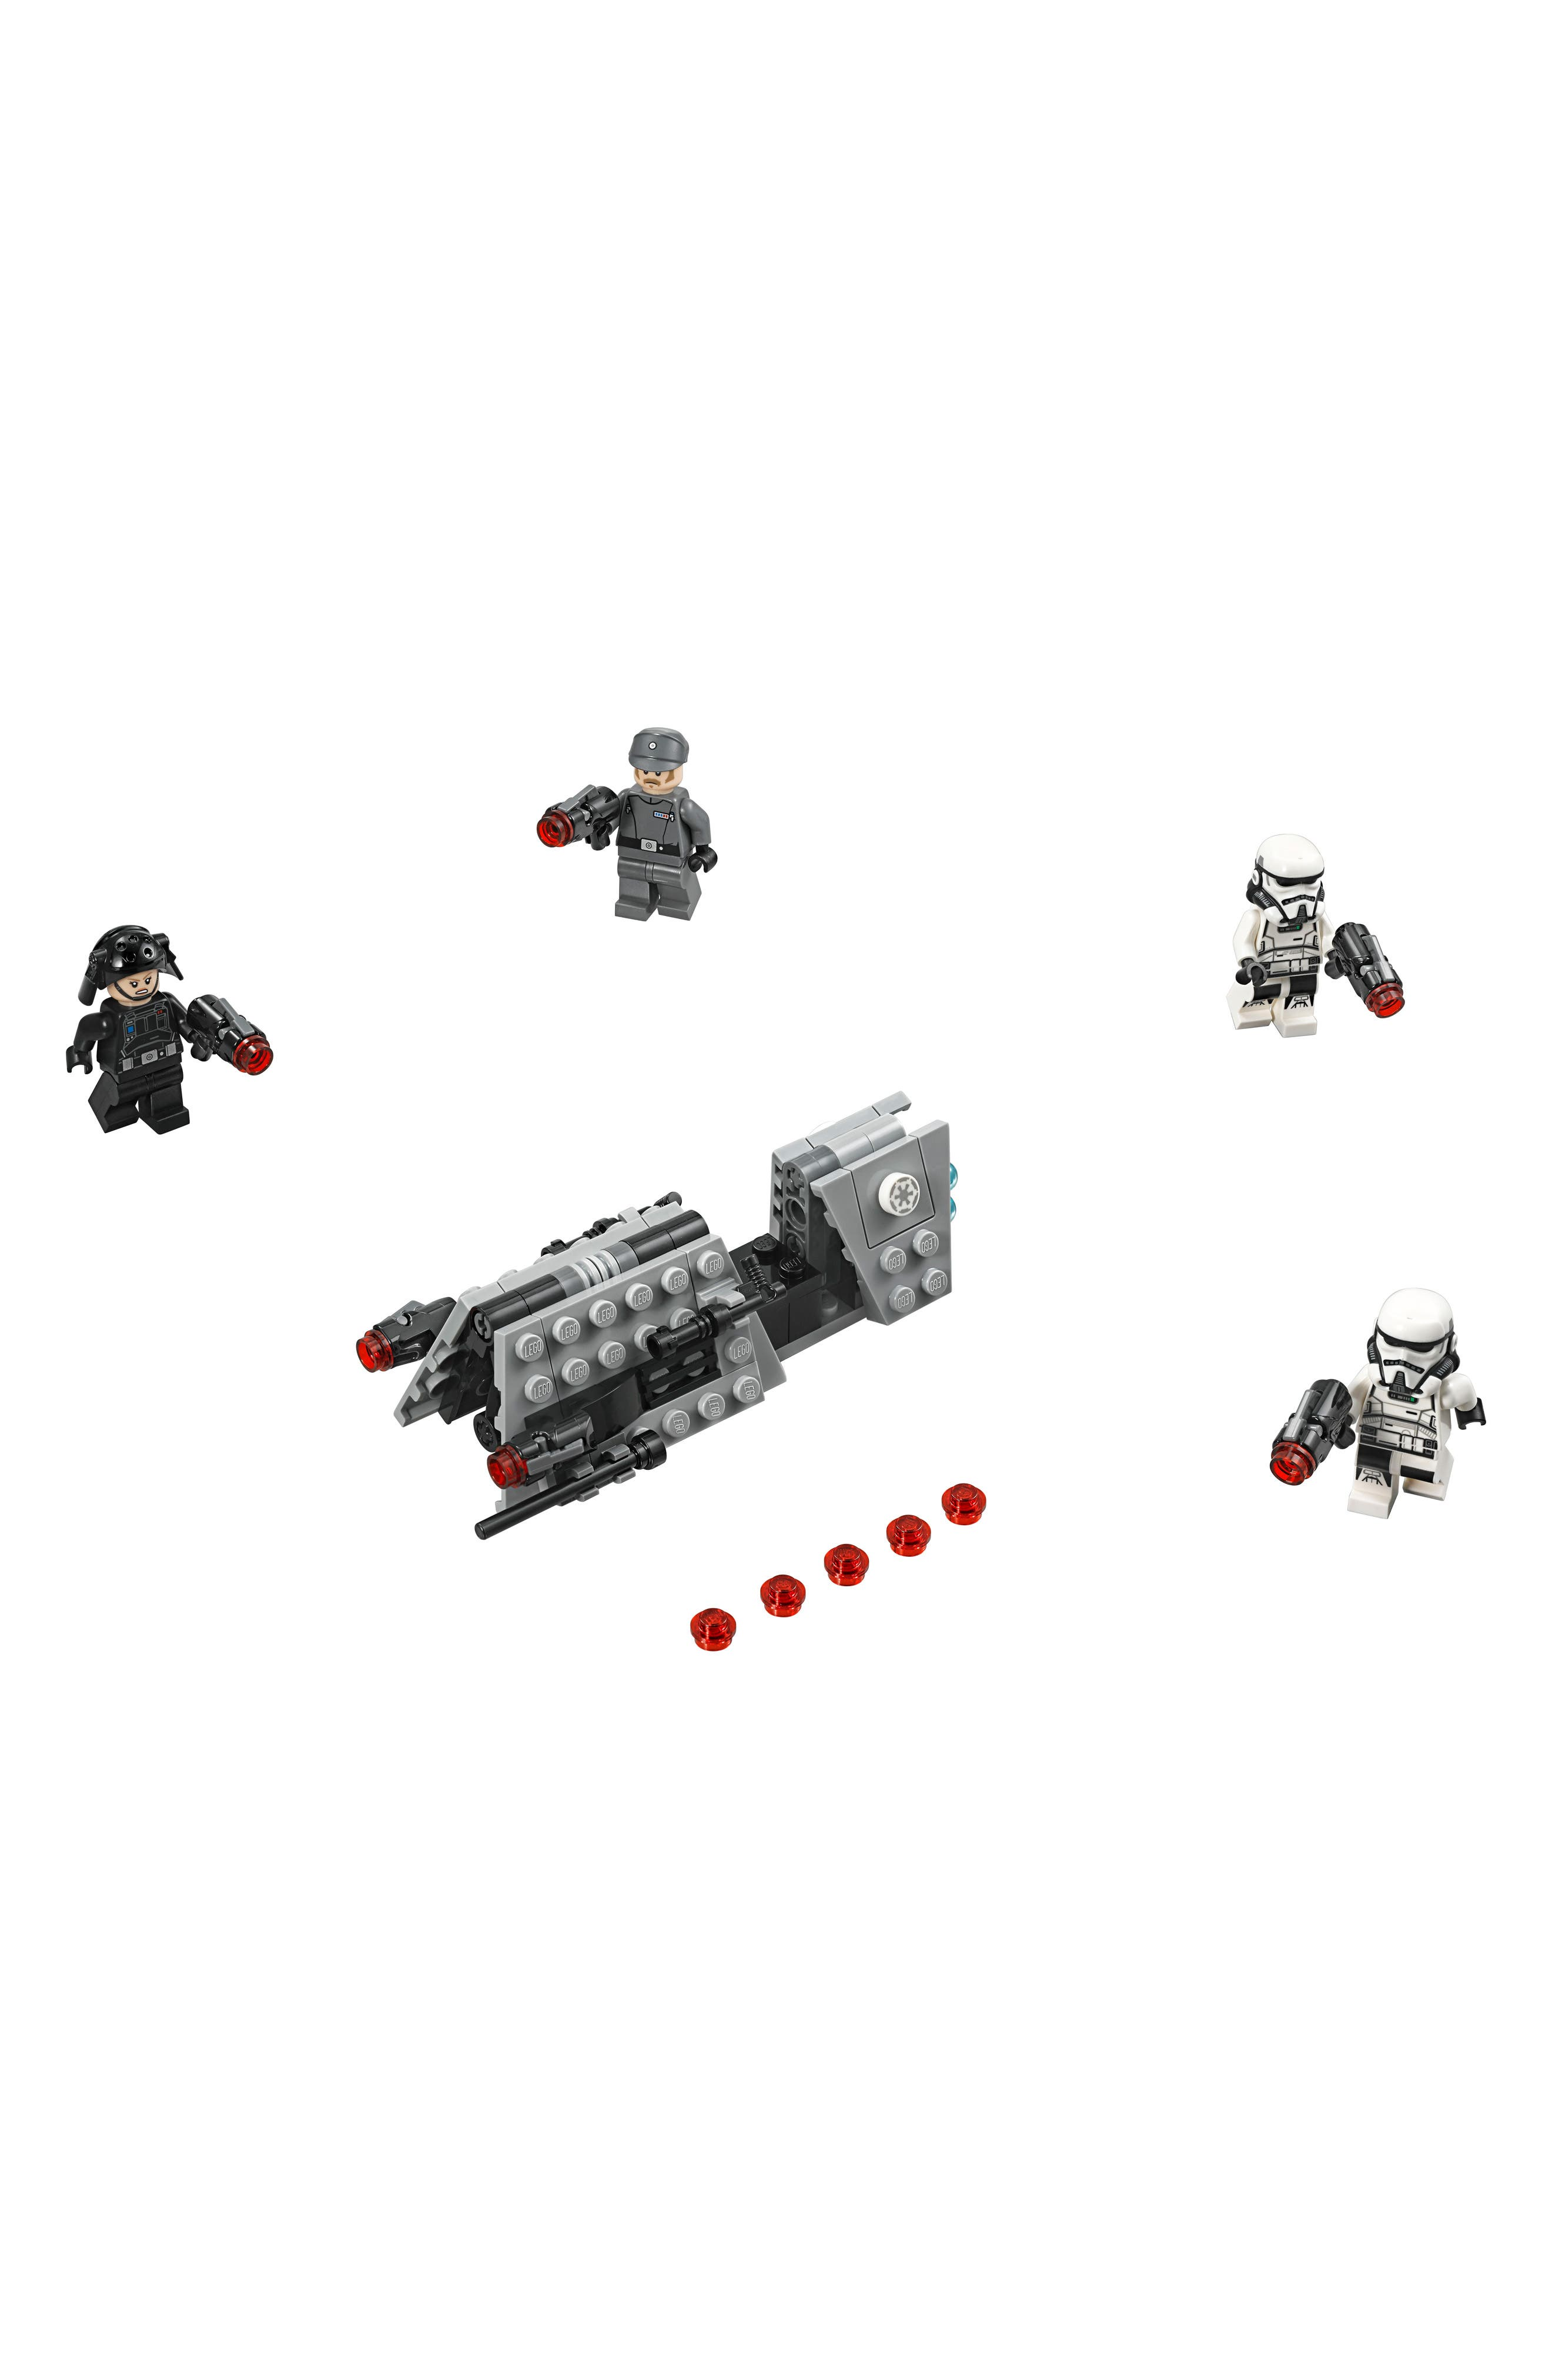 Star Wars<sup>®</sup> Imperial Patrol Battle Pack - 75207,                             Alternate thumbnail 2, color,                             Multi